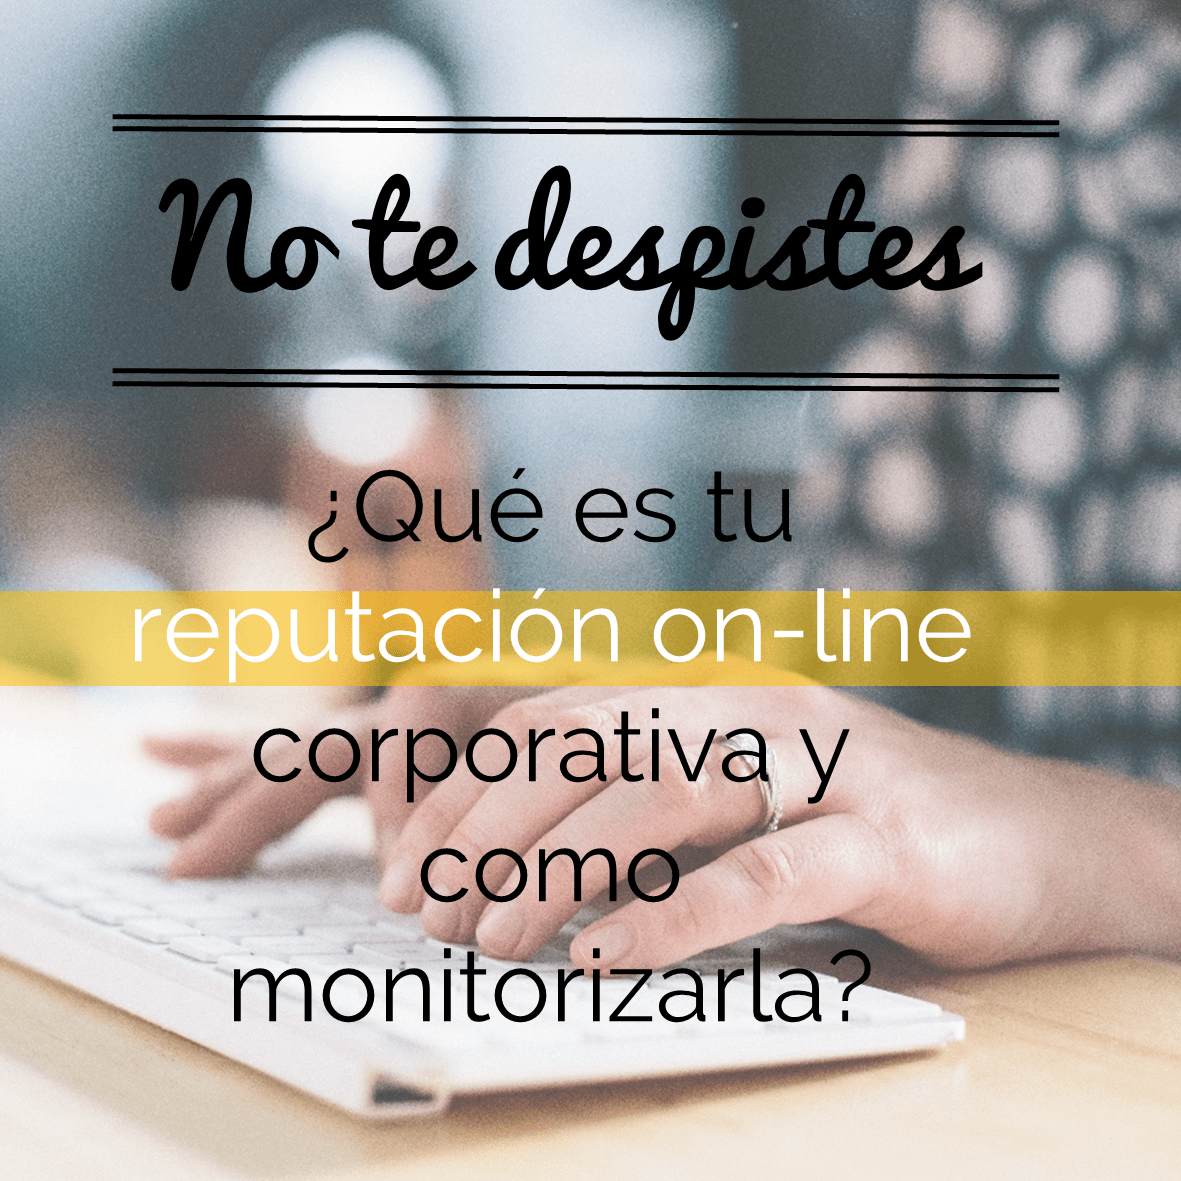 00 Reputacion on line corporativa